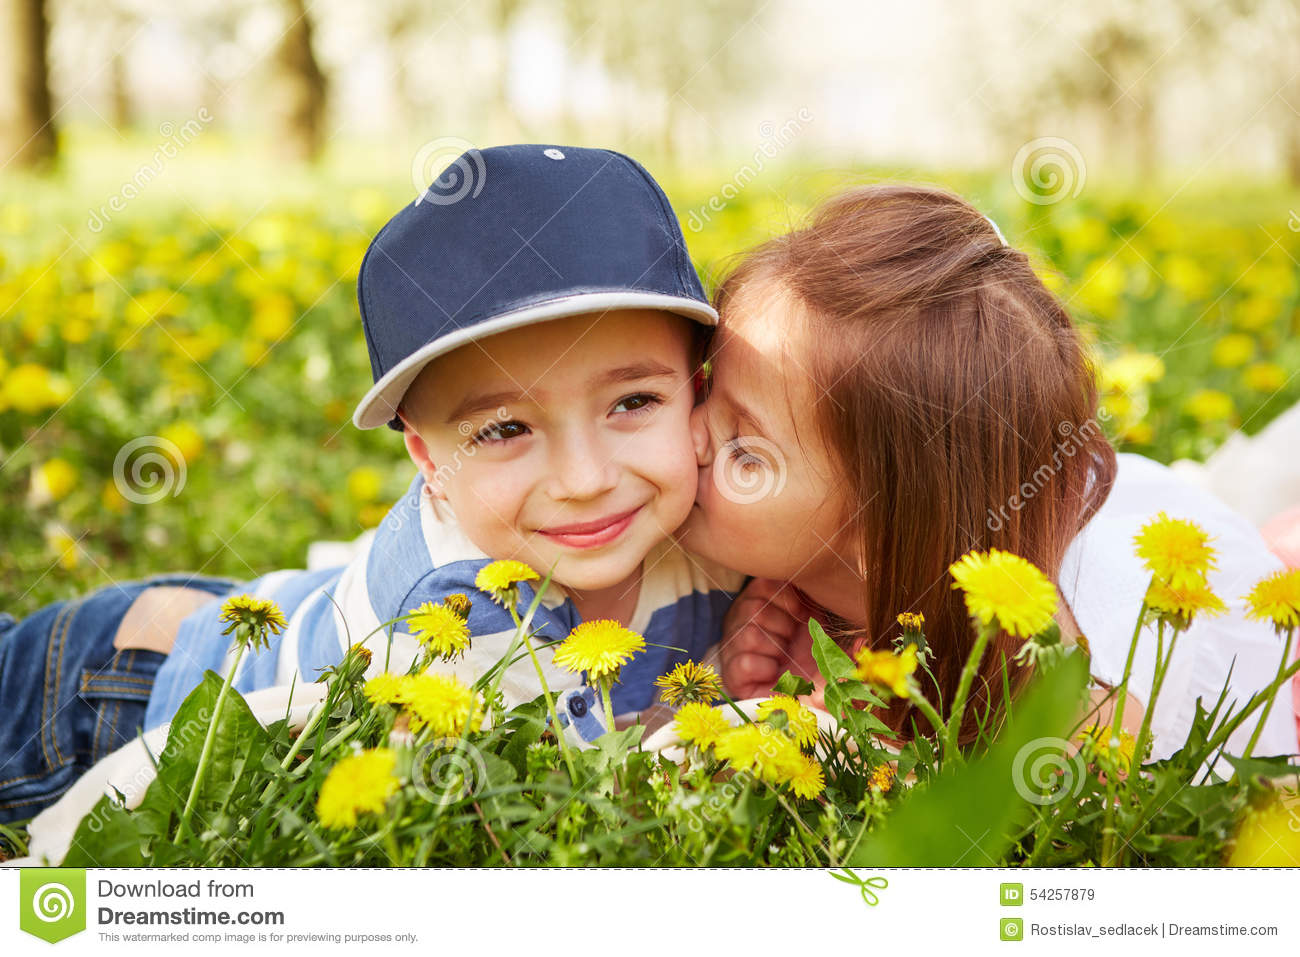 Photos Of Kissing Boy And Girl